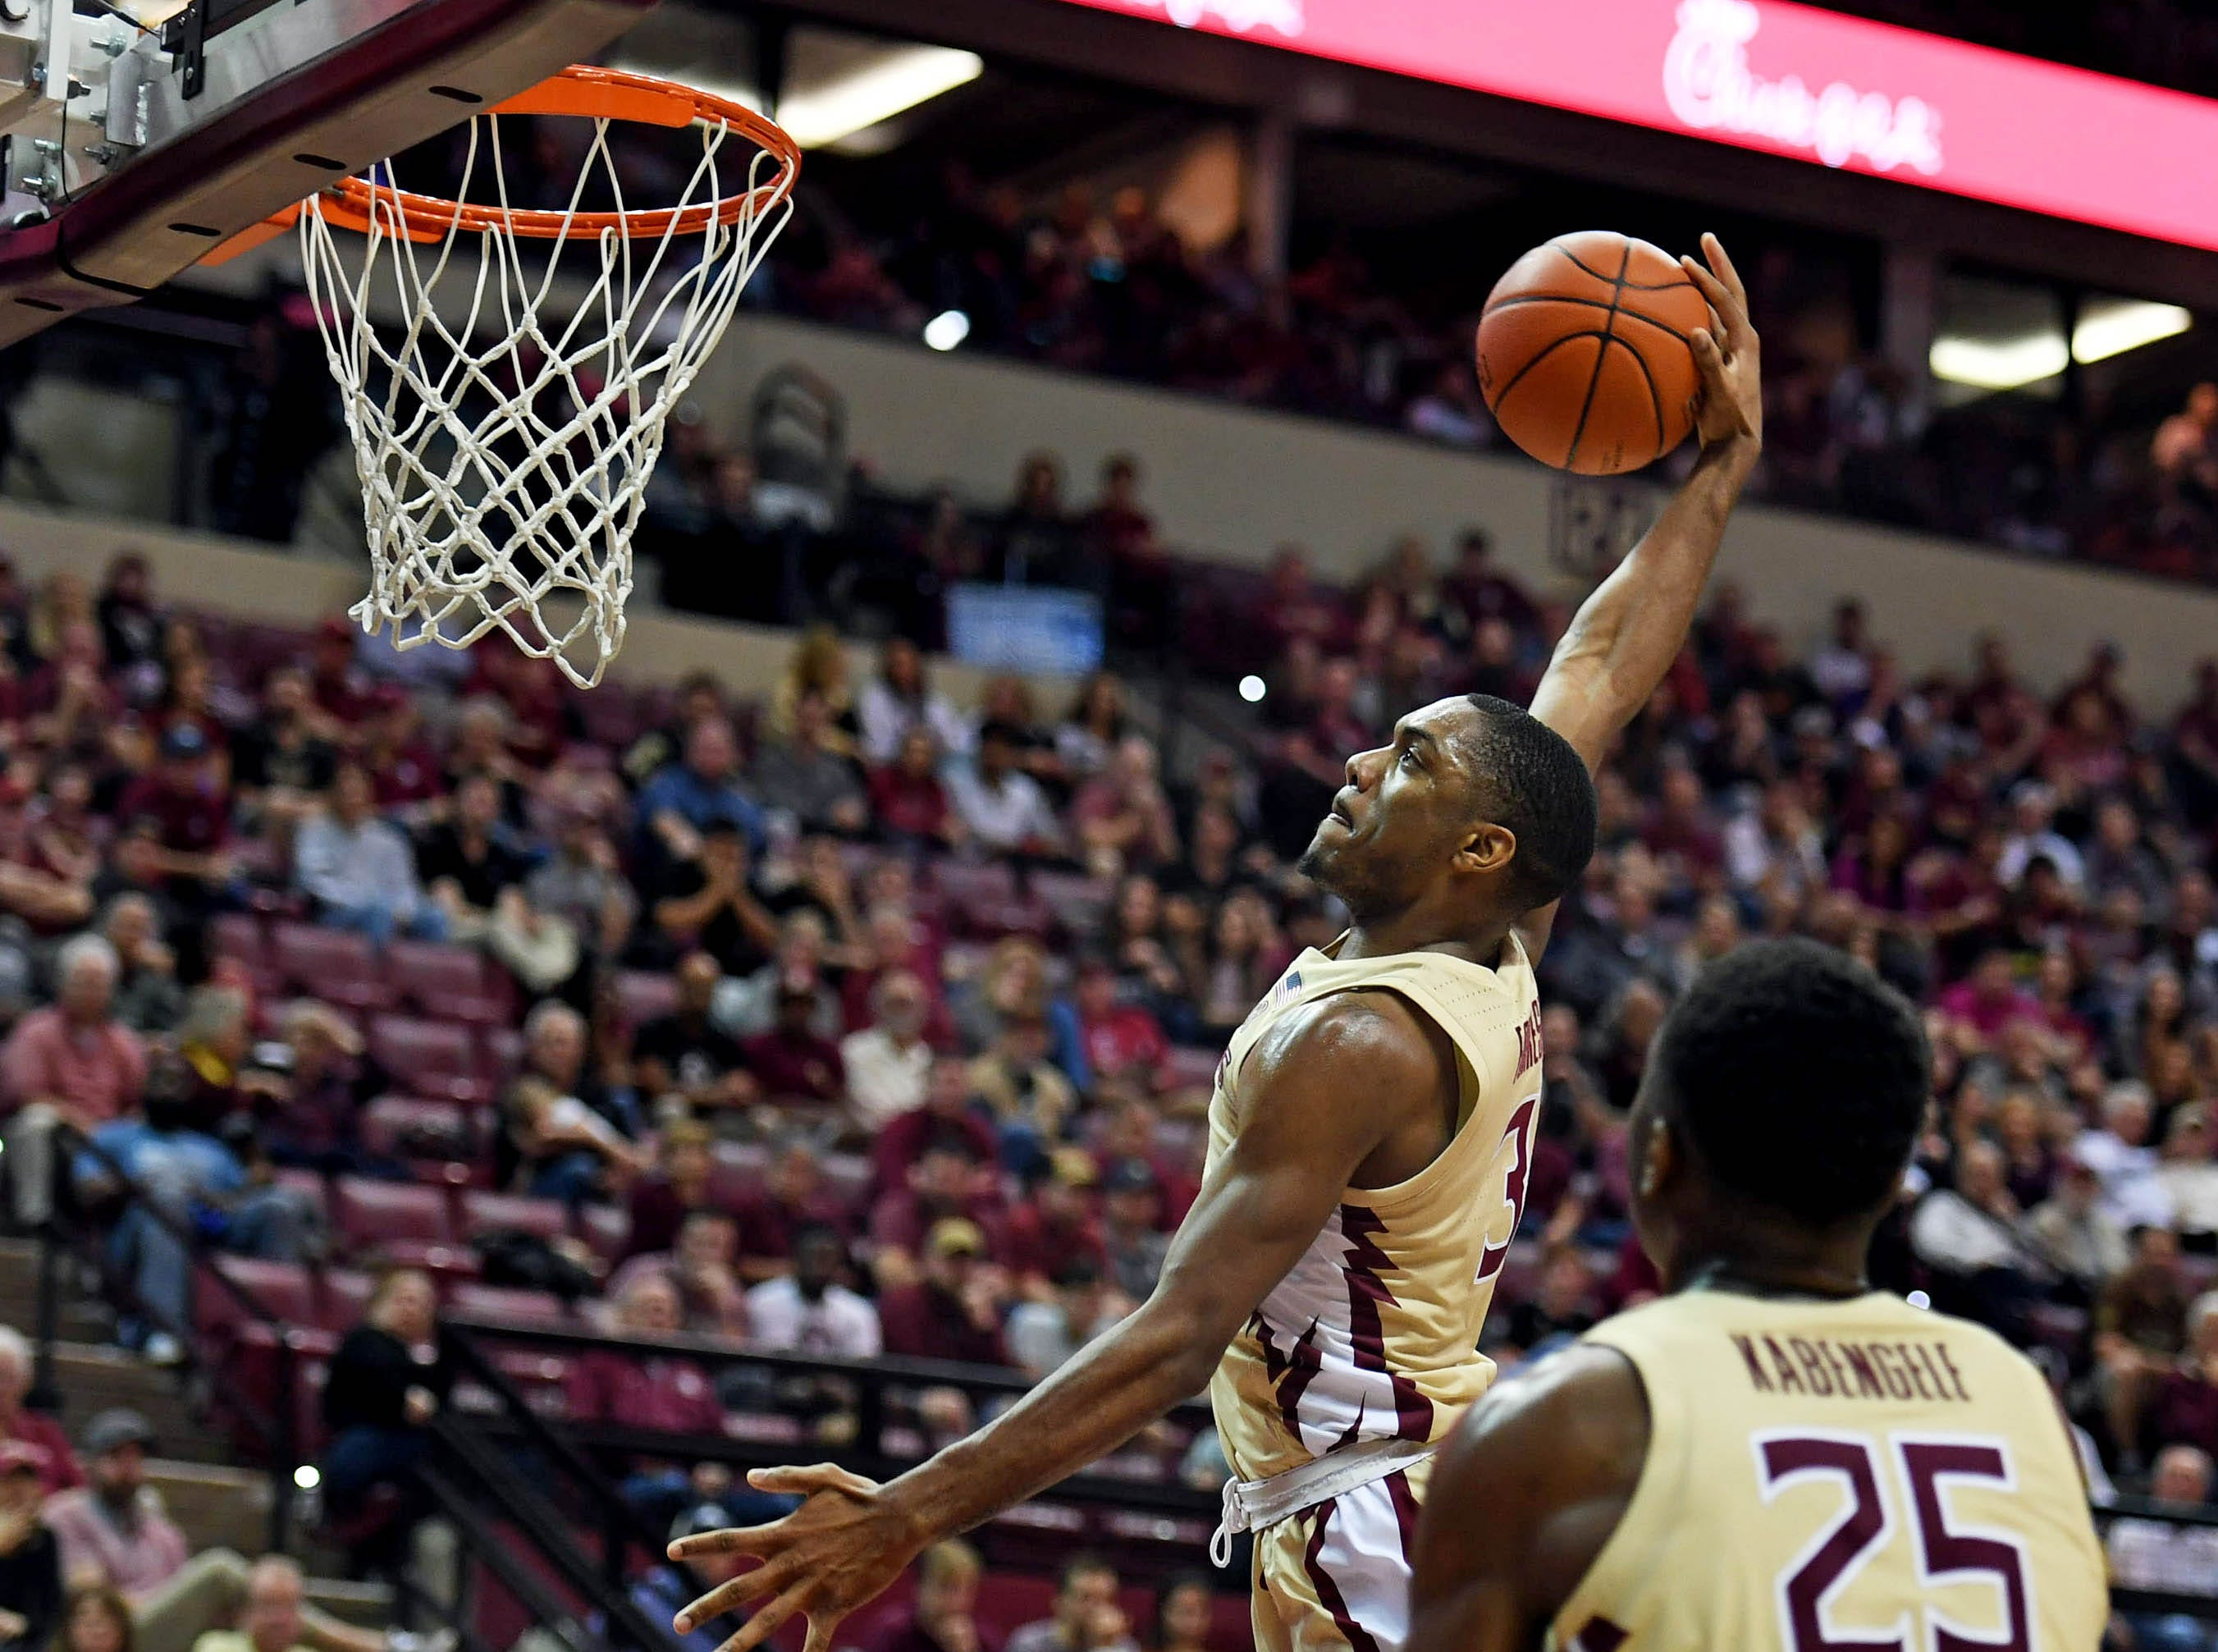 Mar 2, 2019; Tallahassee, FL, USA; Florida State Seminoles guard Trent Forrest (3) dunks the ball during the second half of the game against the North Carolina State Wolfpack at Donald L. Tucker Center. Mandatory Credit: Melina Myers-USA TODAY Sports